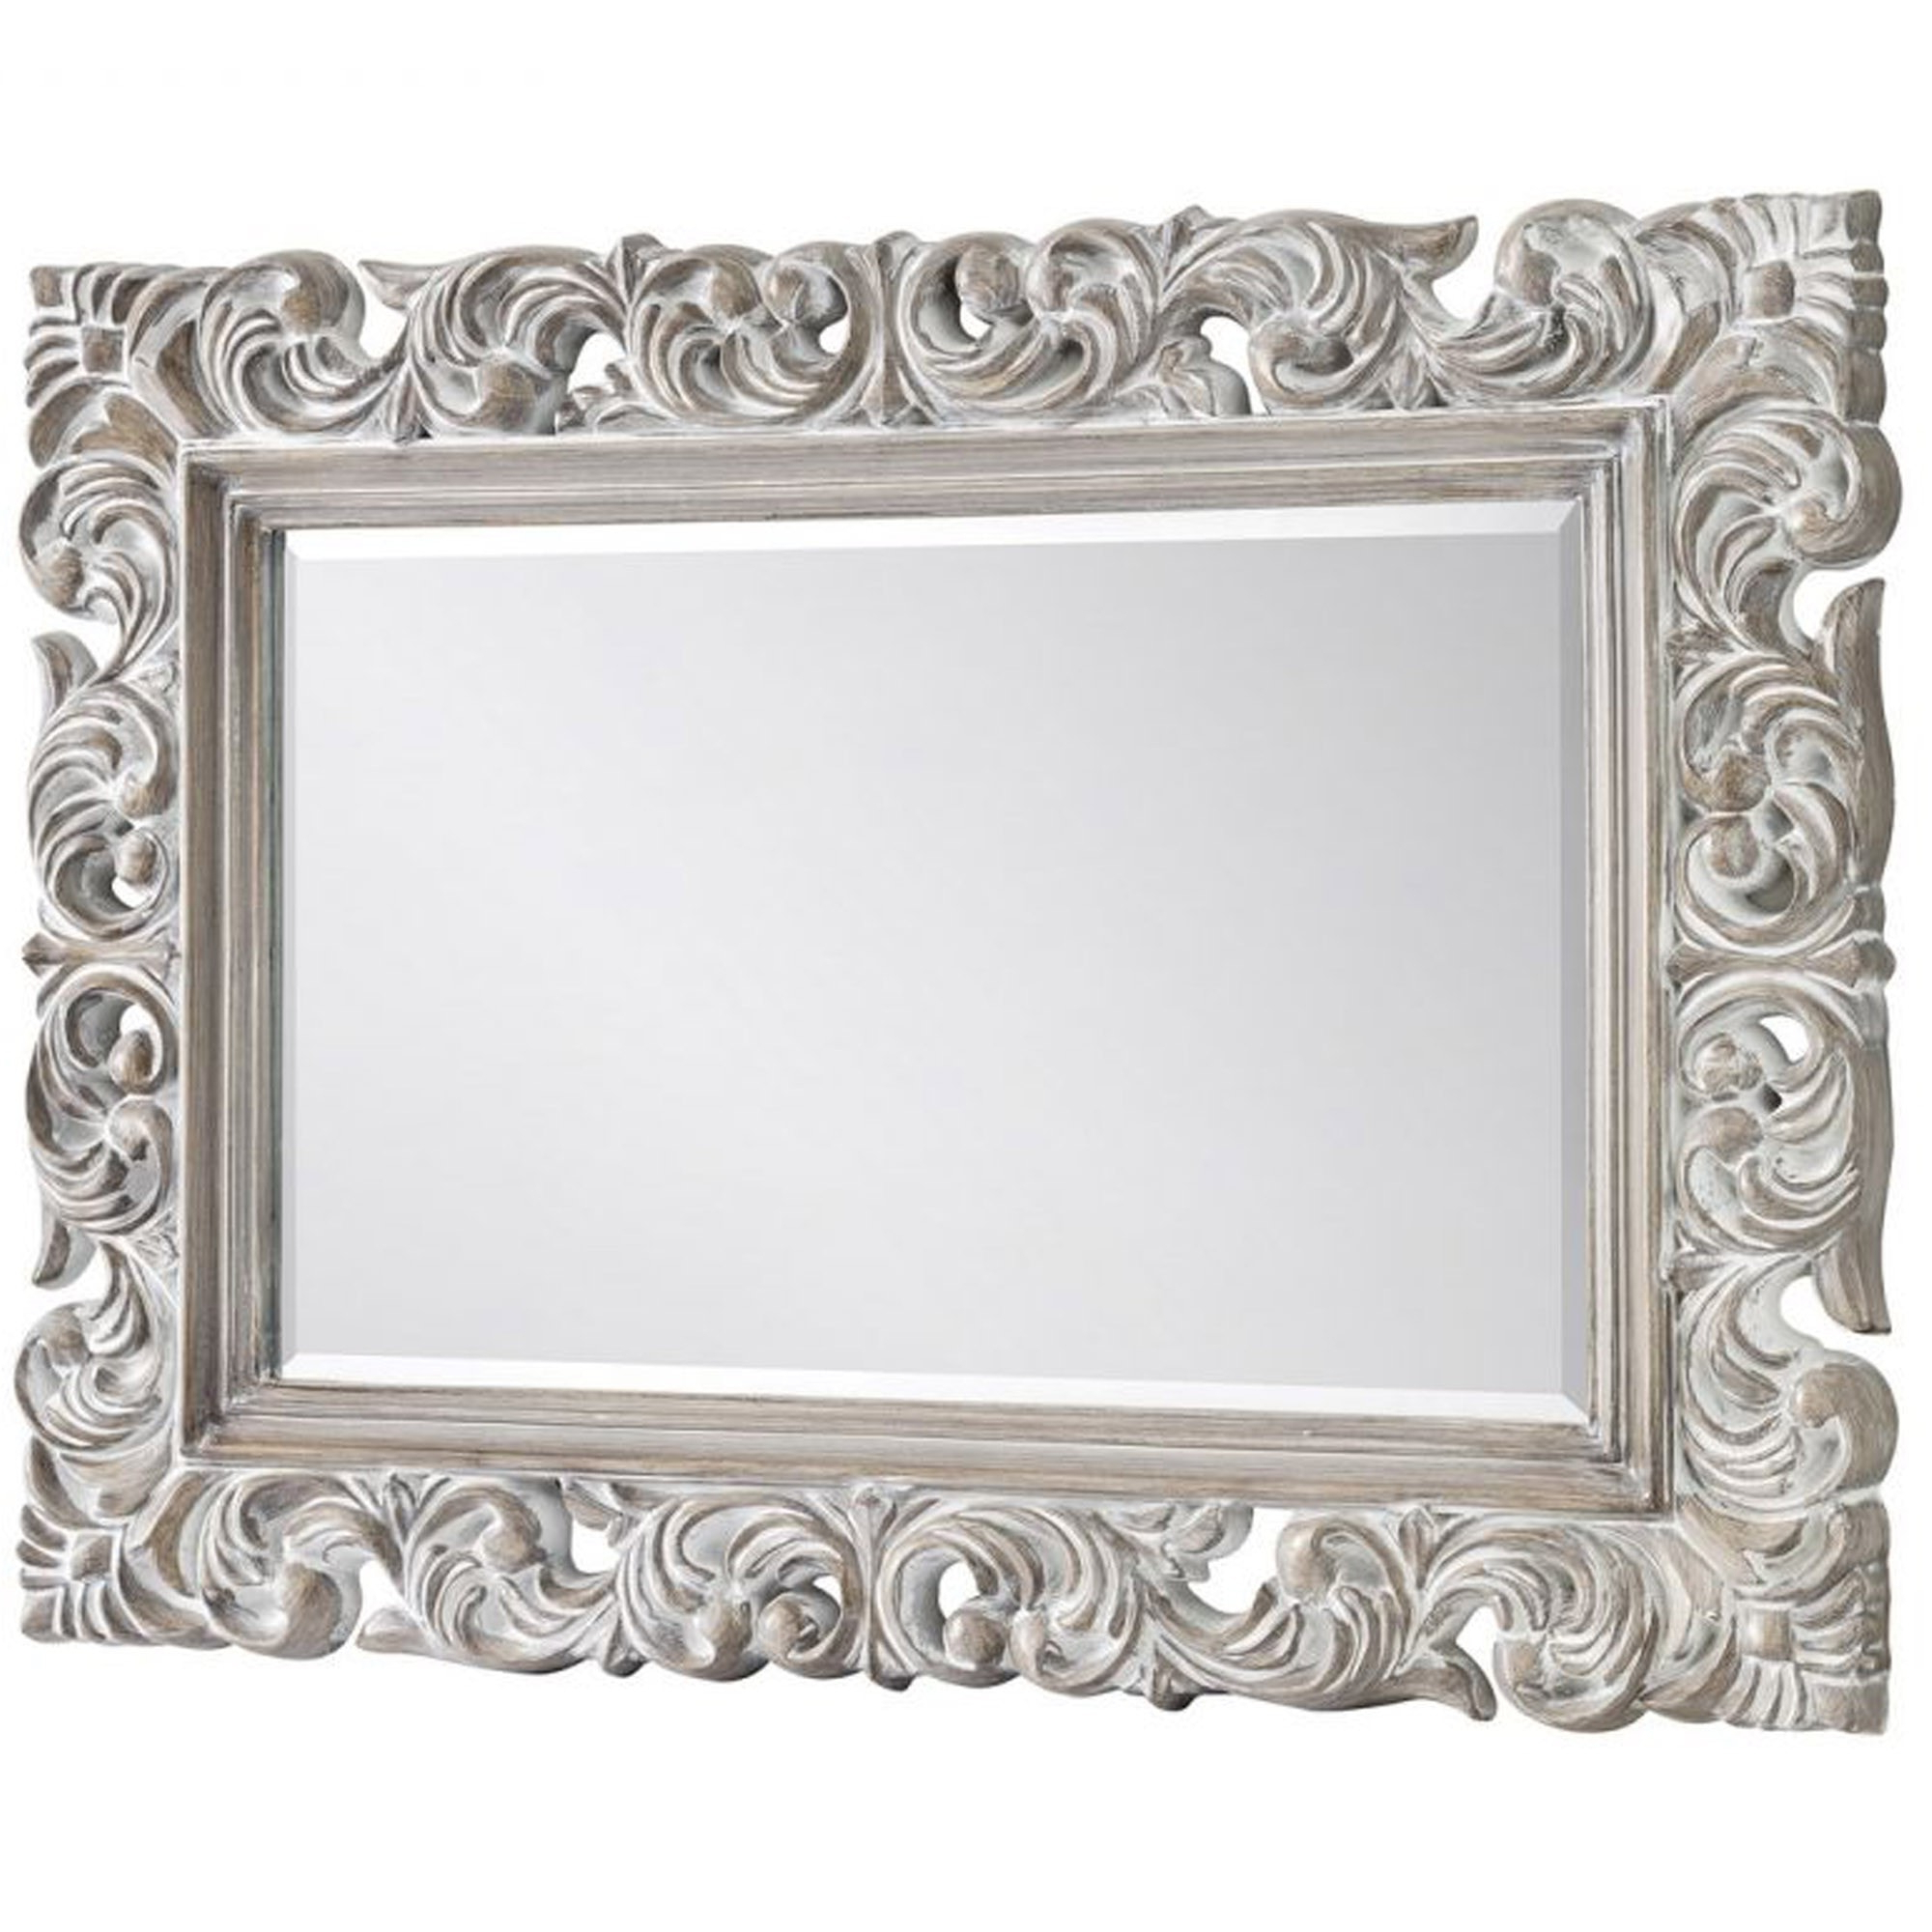 Baroque Distressed Wall Mirror Regarding Latest Baroque Wall Mirrors (View 1 of 20)